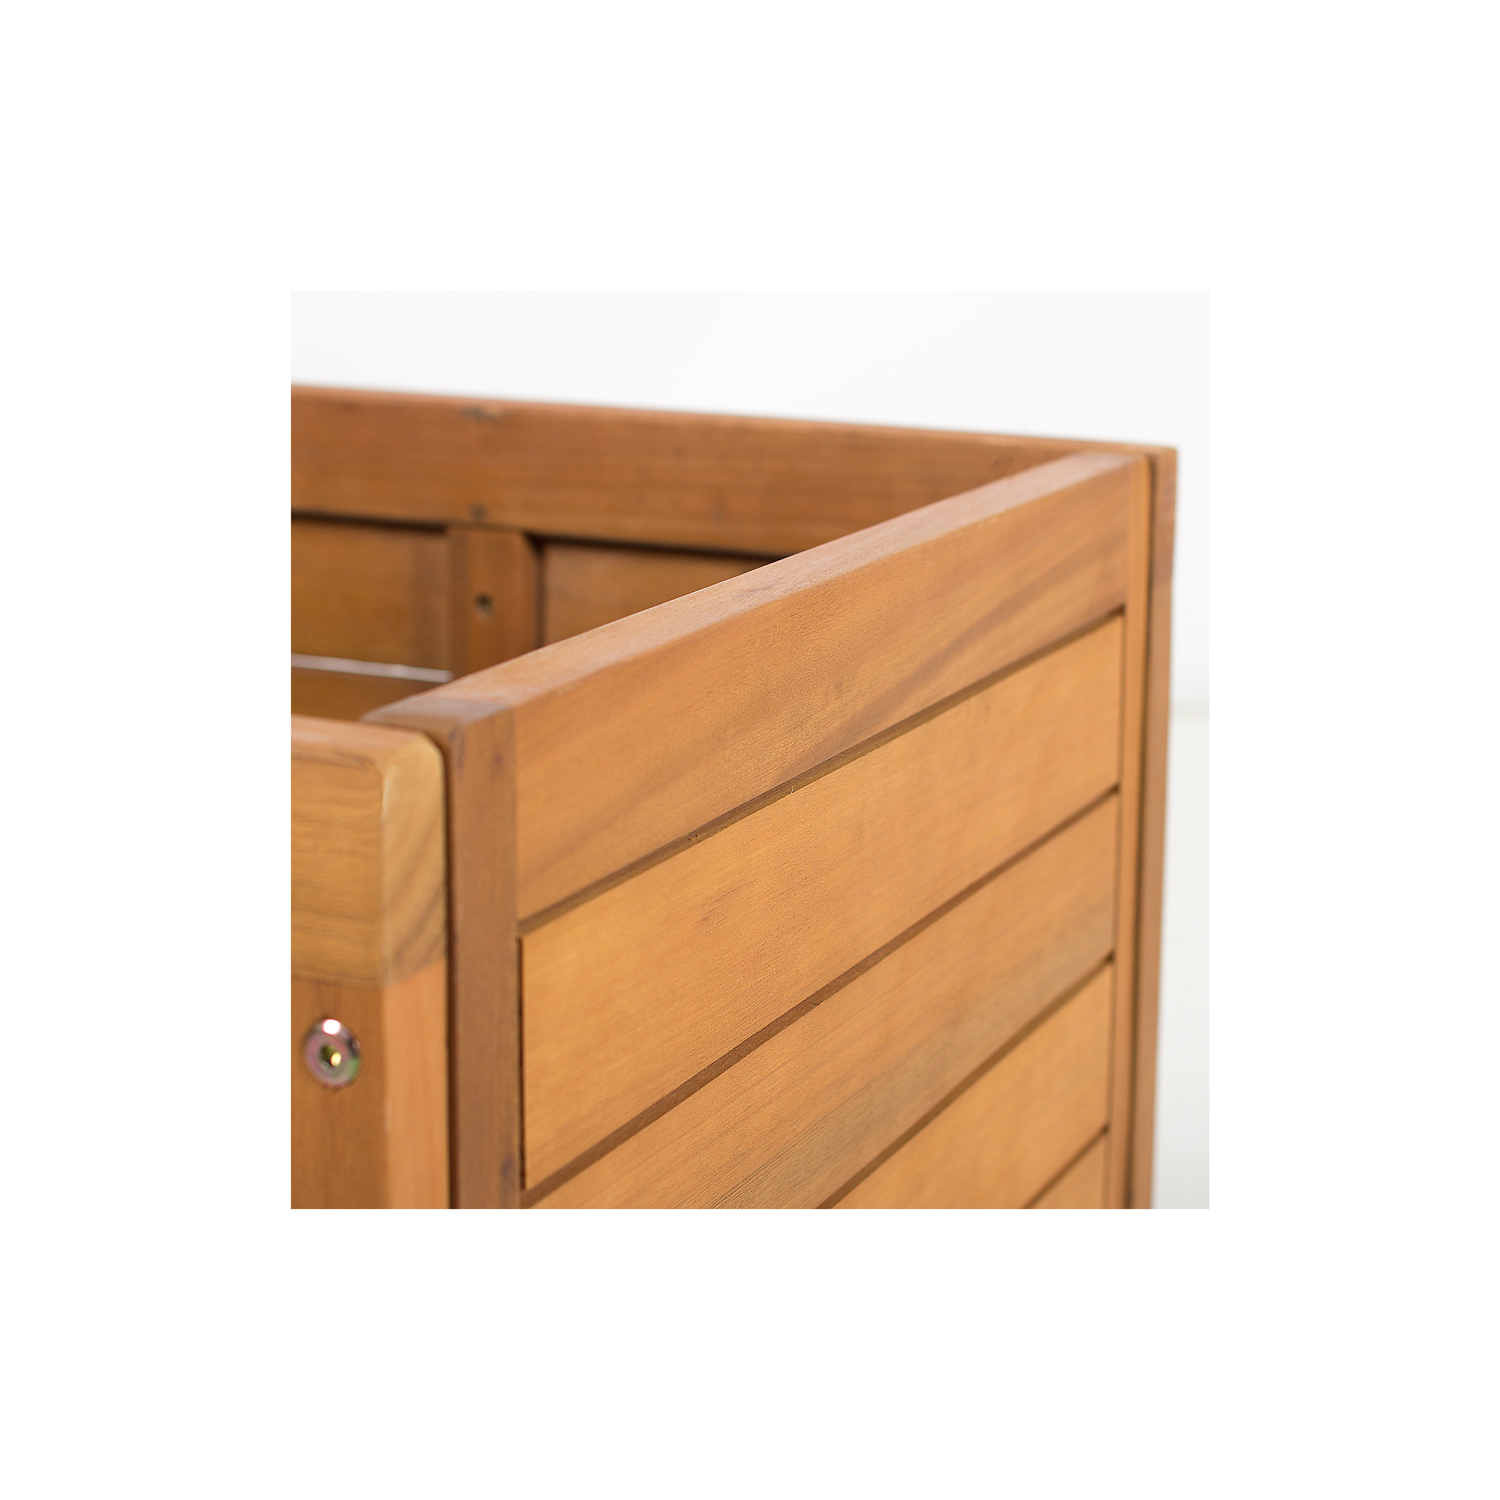 planter-timber-detail.jpg